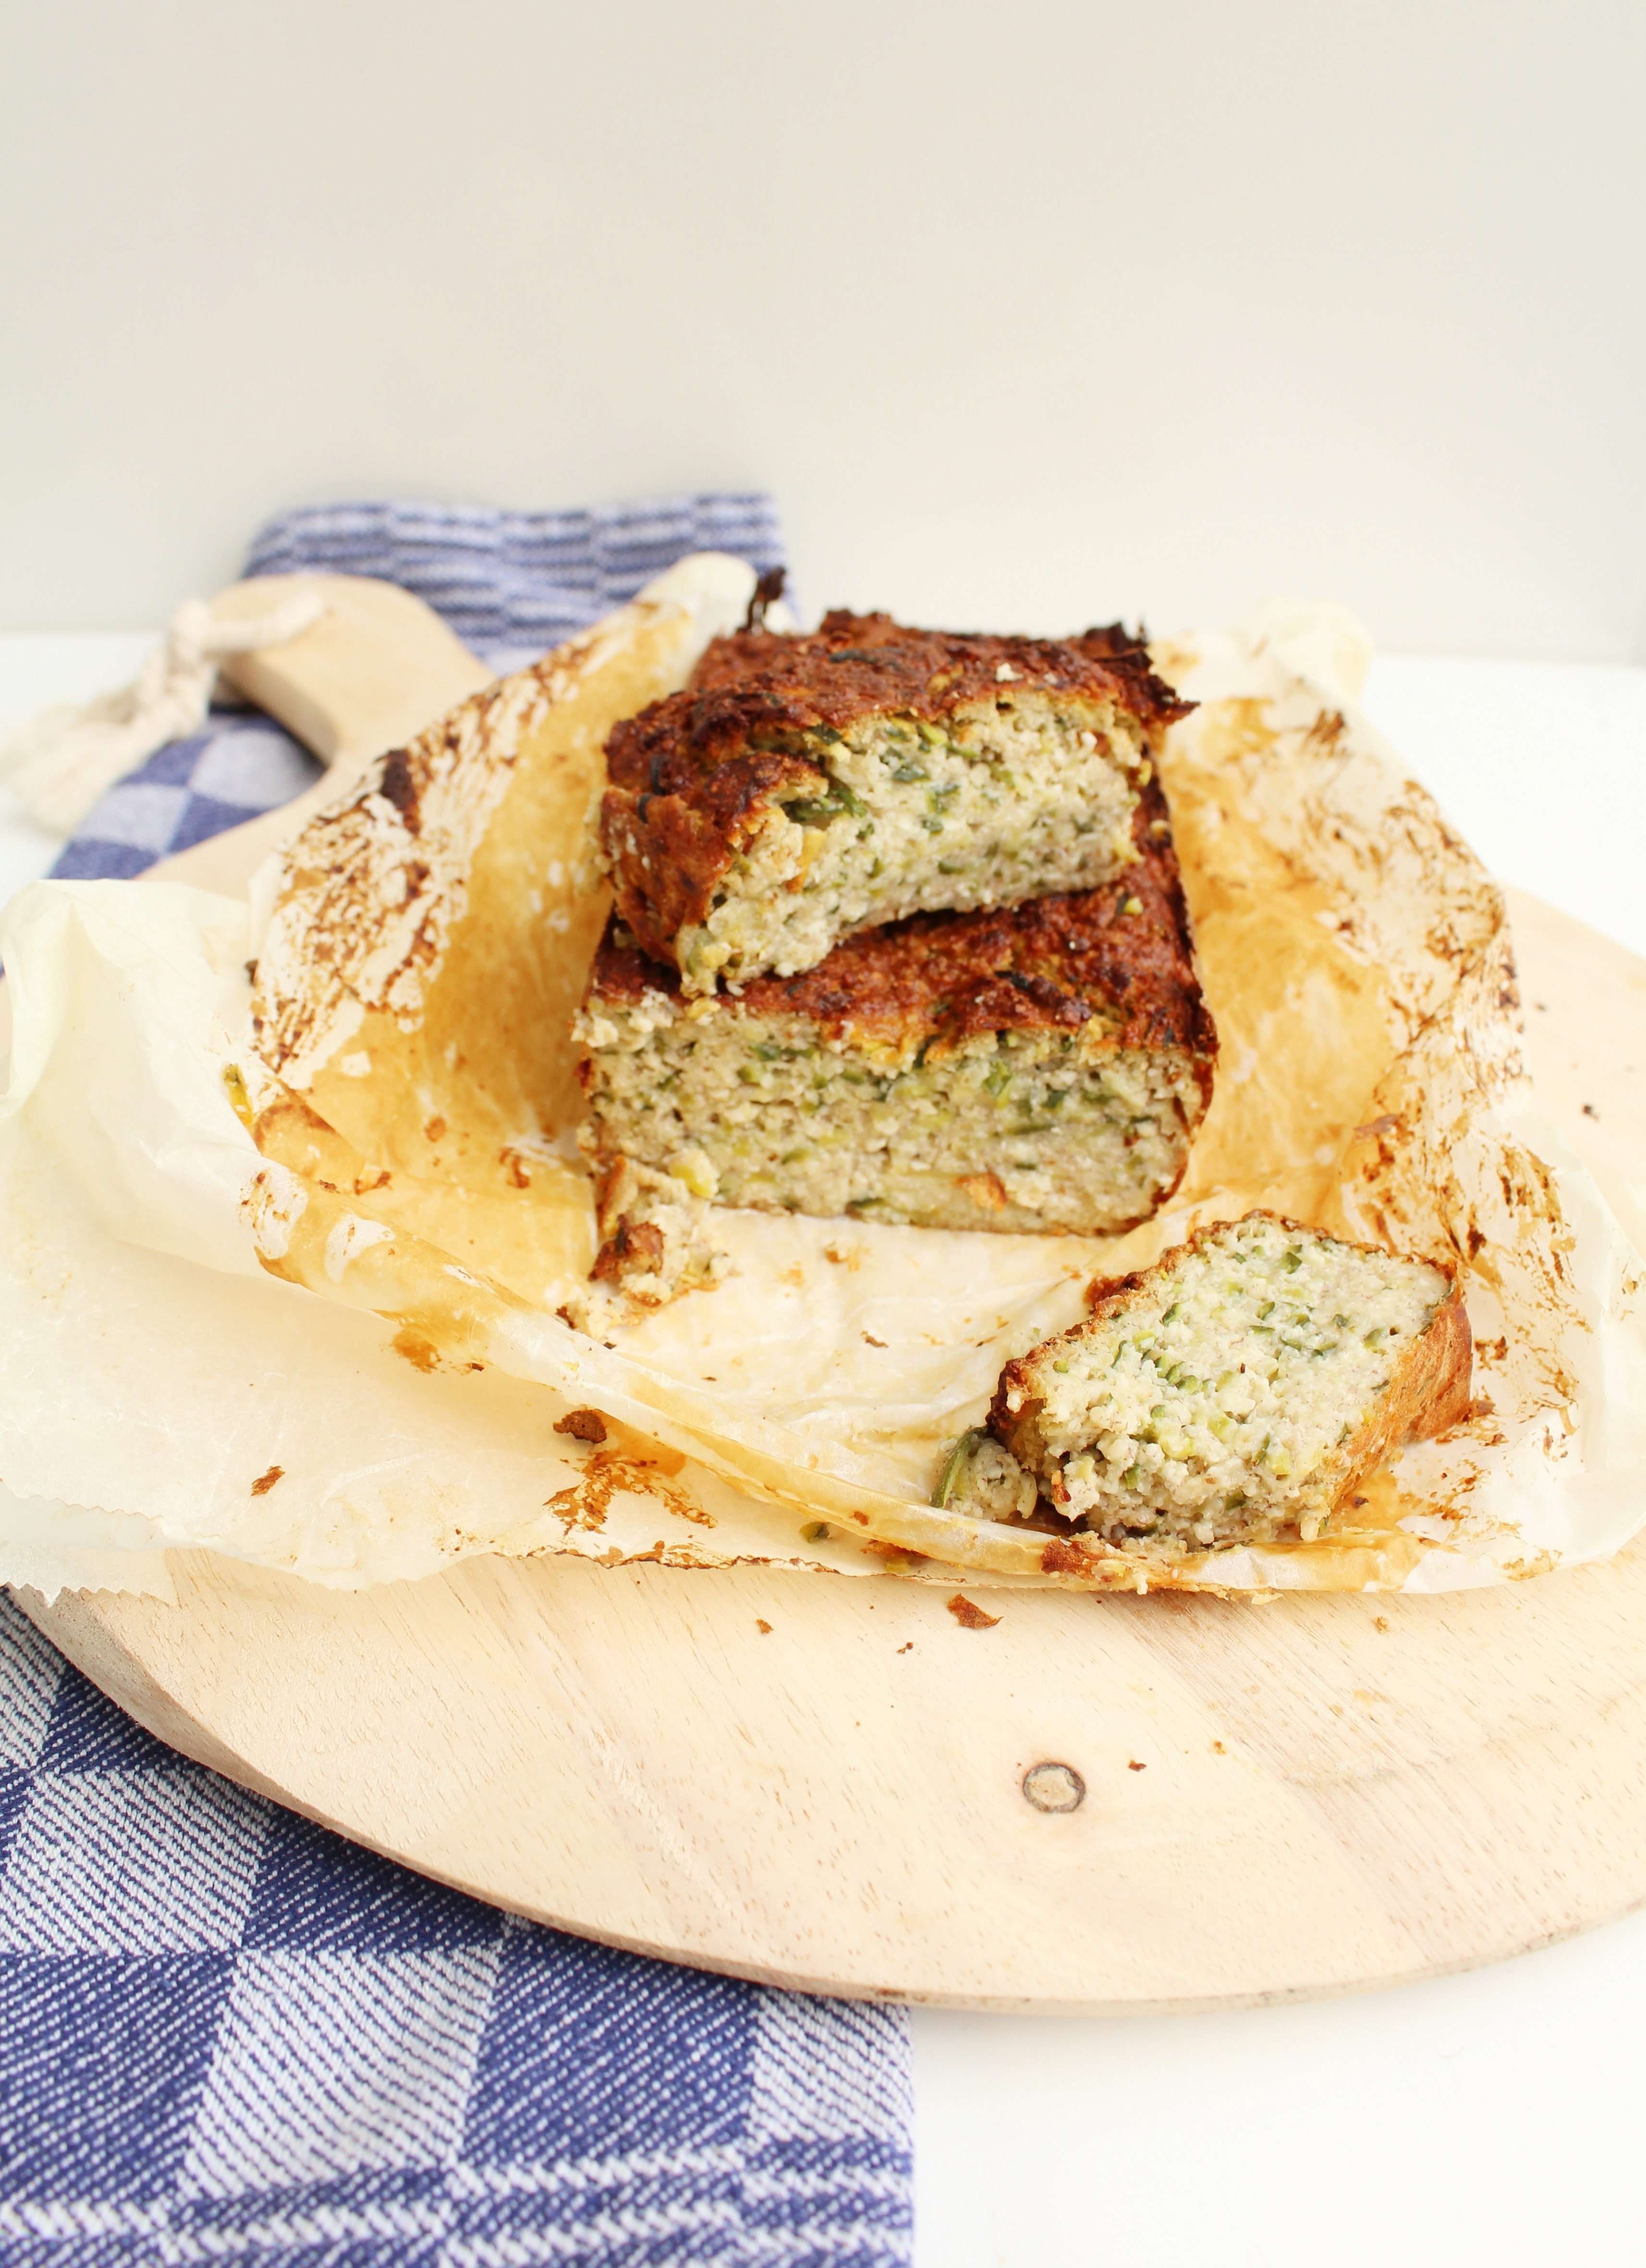 Courgette bananenbrood